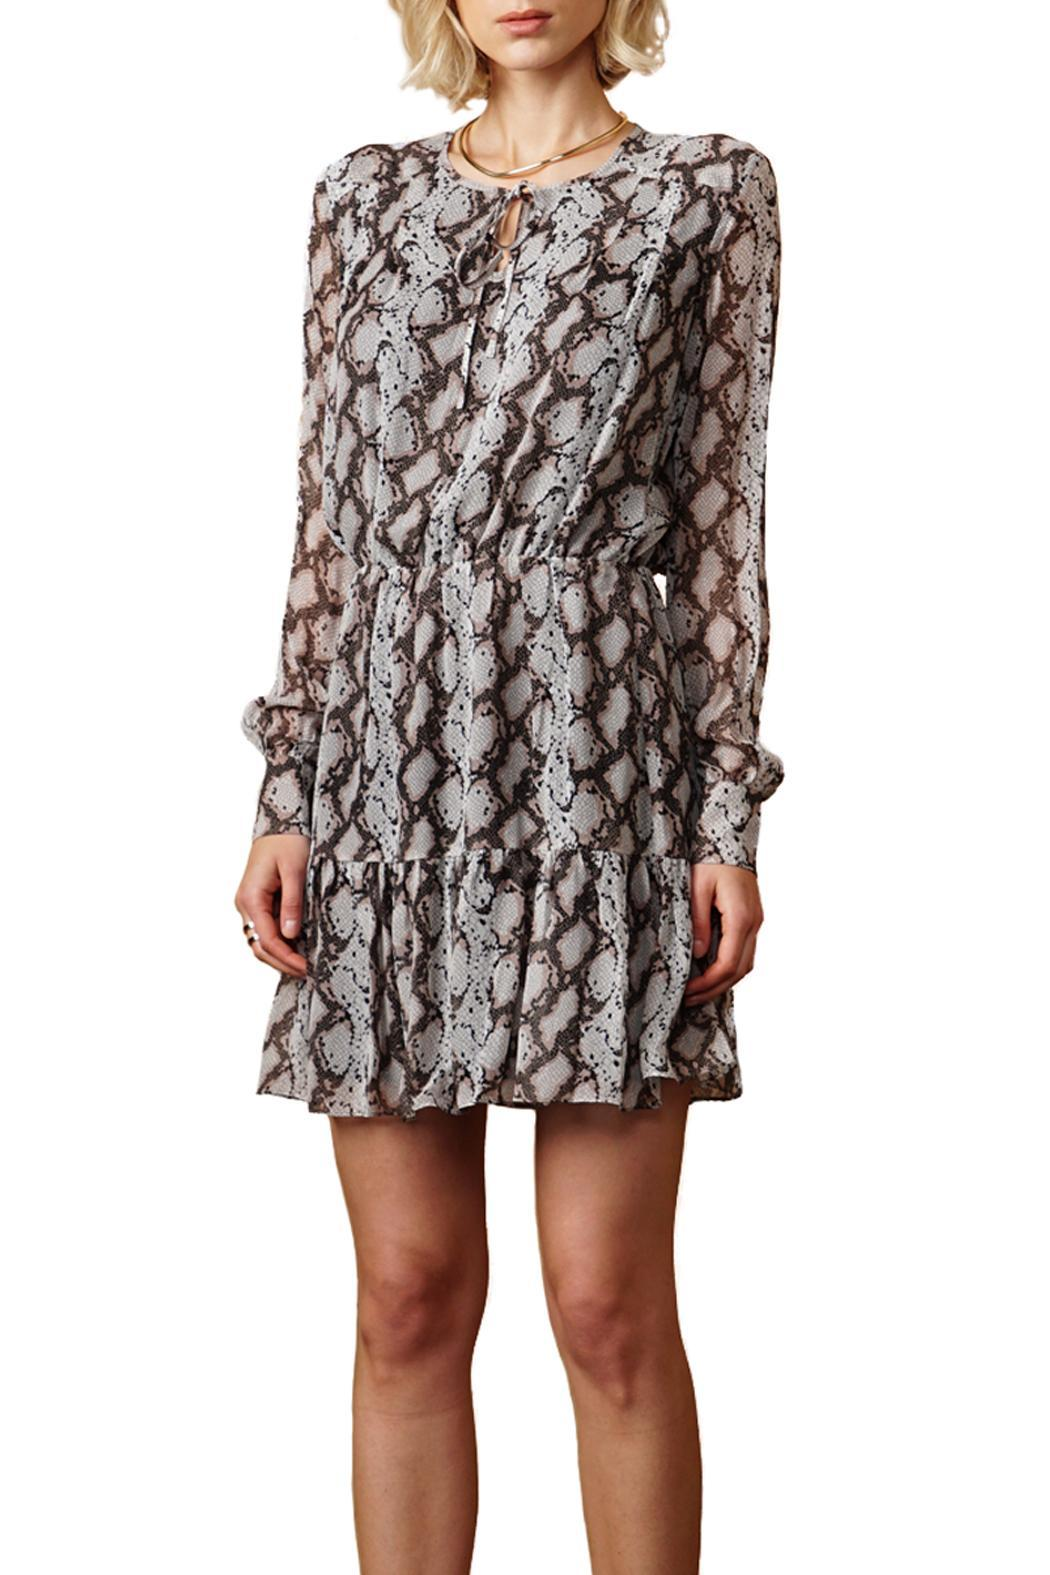 Greylin Sellia Pinktucked Dress - Front Cropped Image